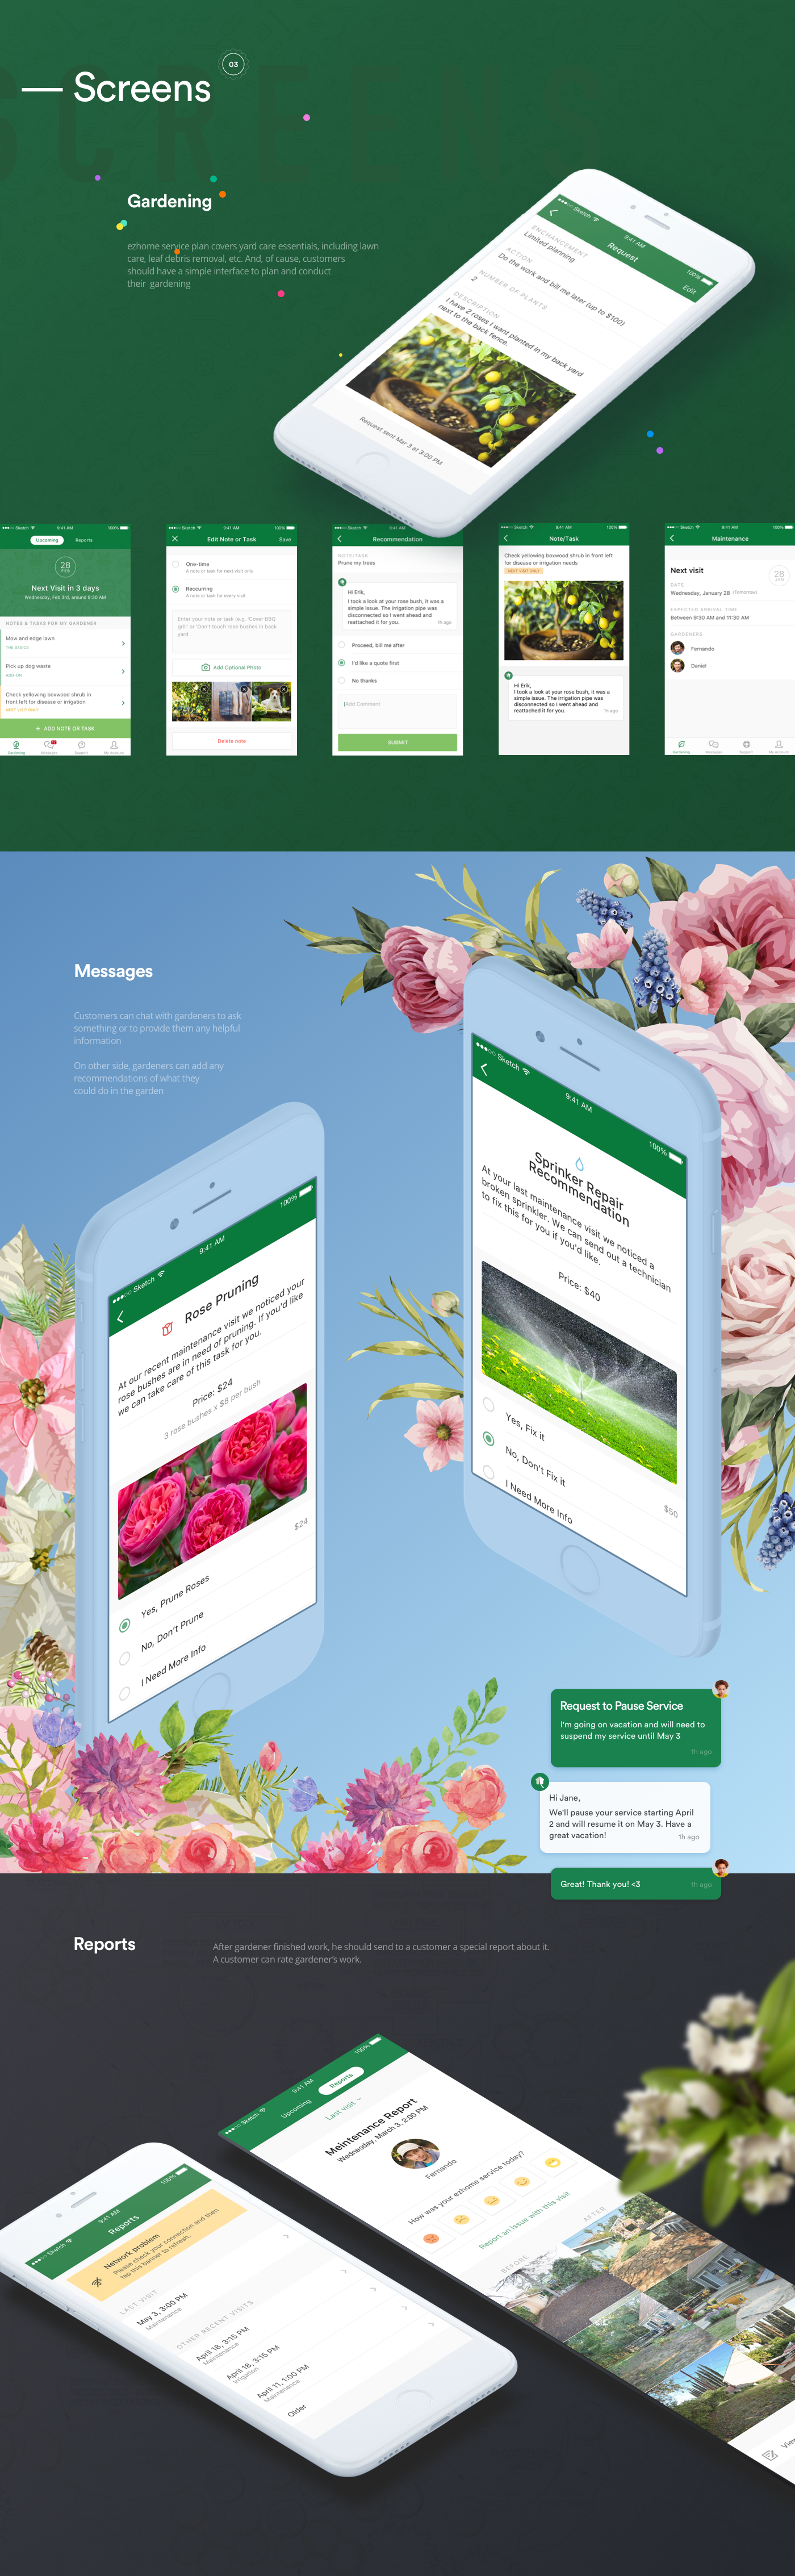 mobile,app,ios,service,iphone,UI,ux,Interface,user interface